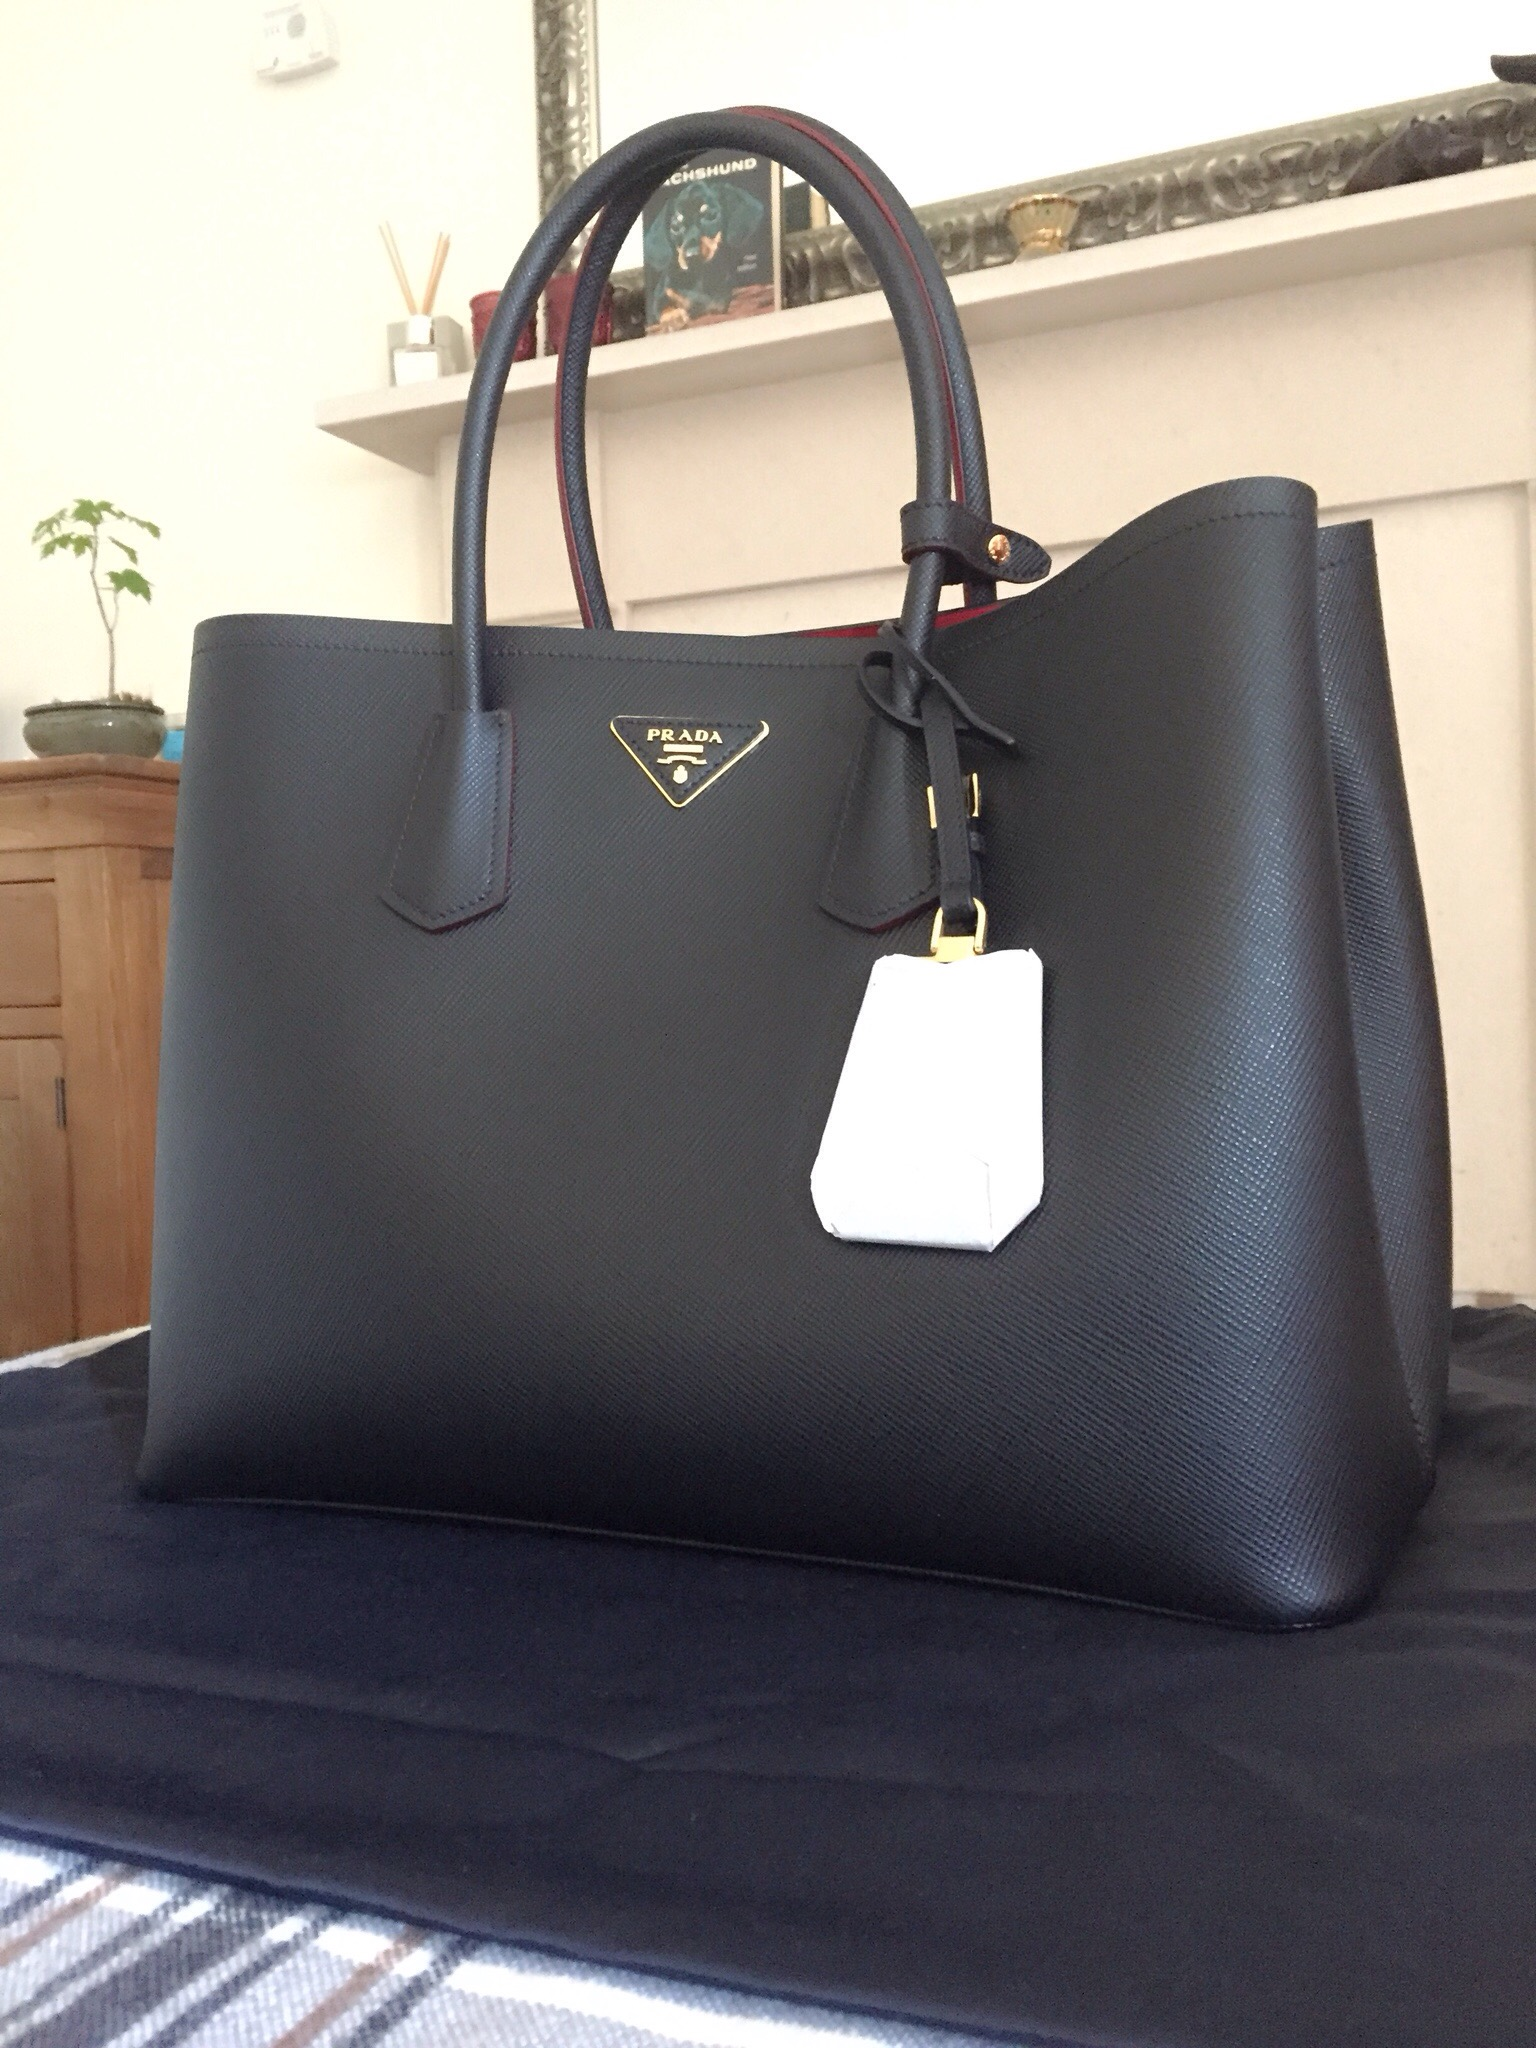 Prada Double Bag: reveal and mini review - Vikky Anna